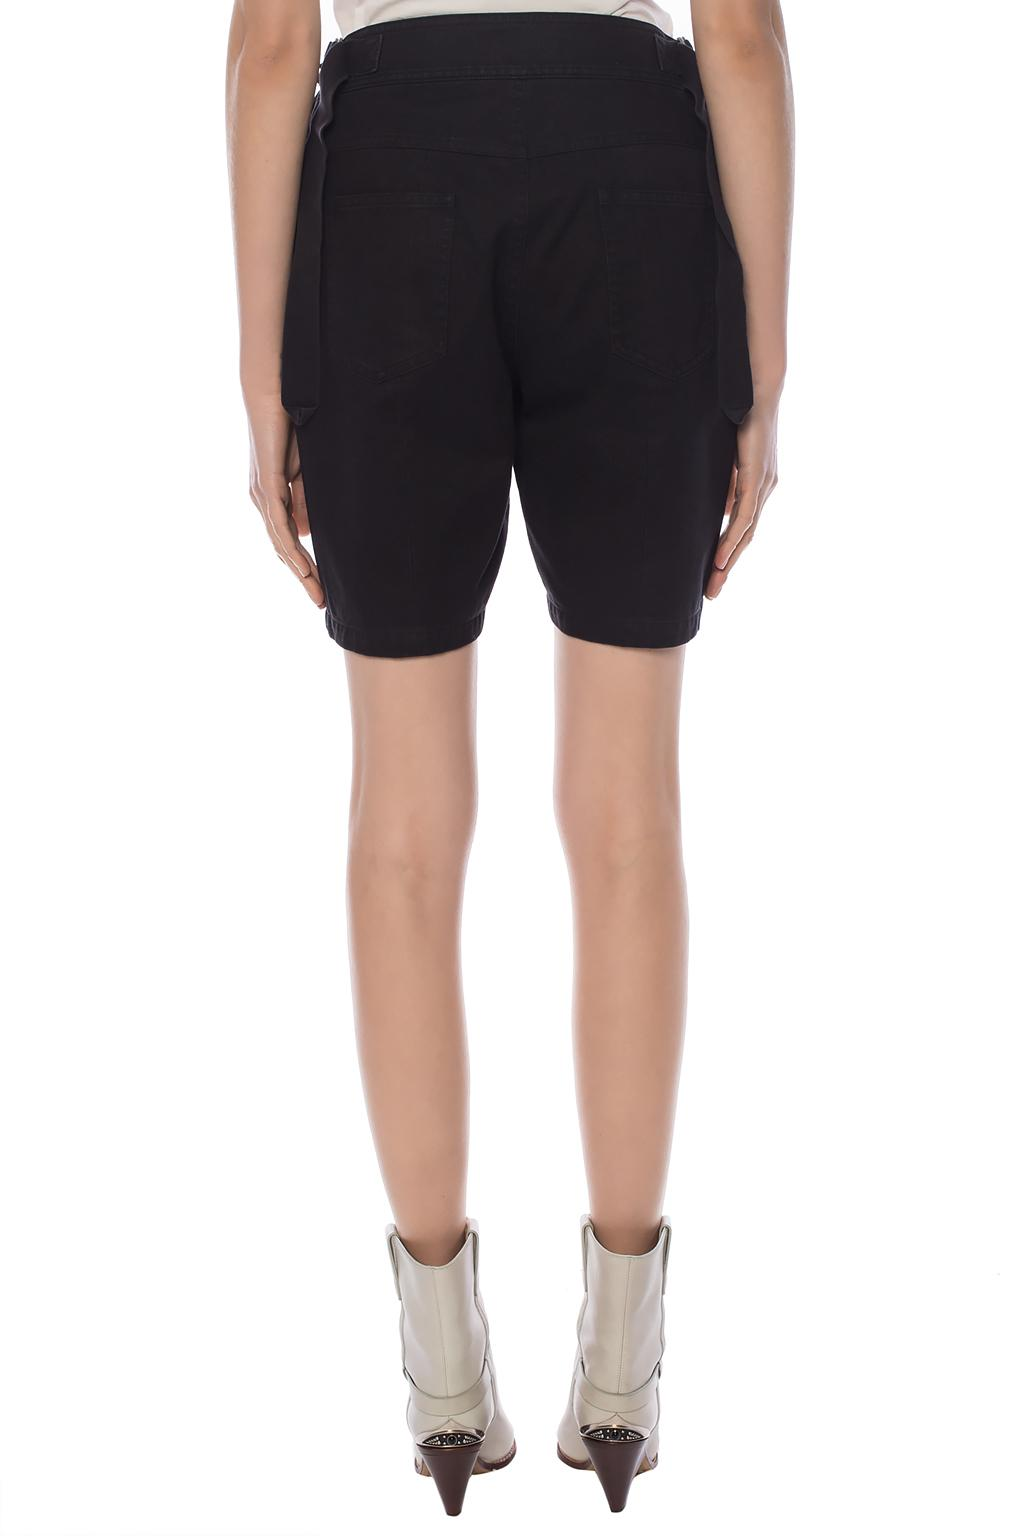 Saint Laurent Drawstring shorts